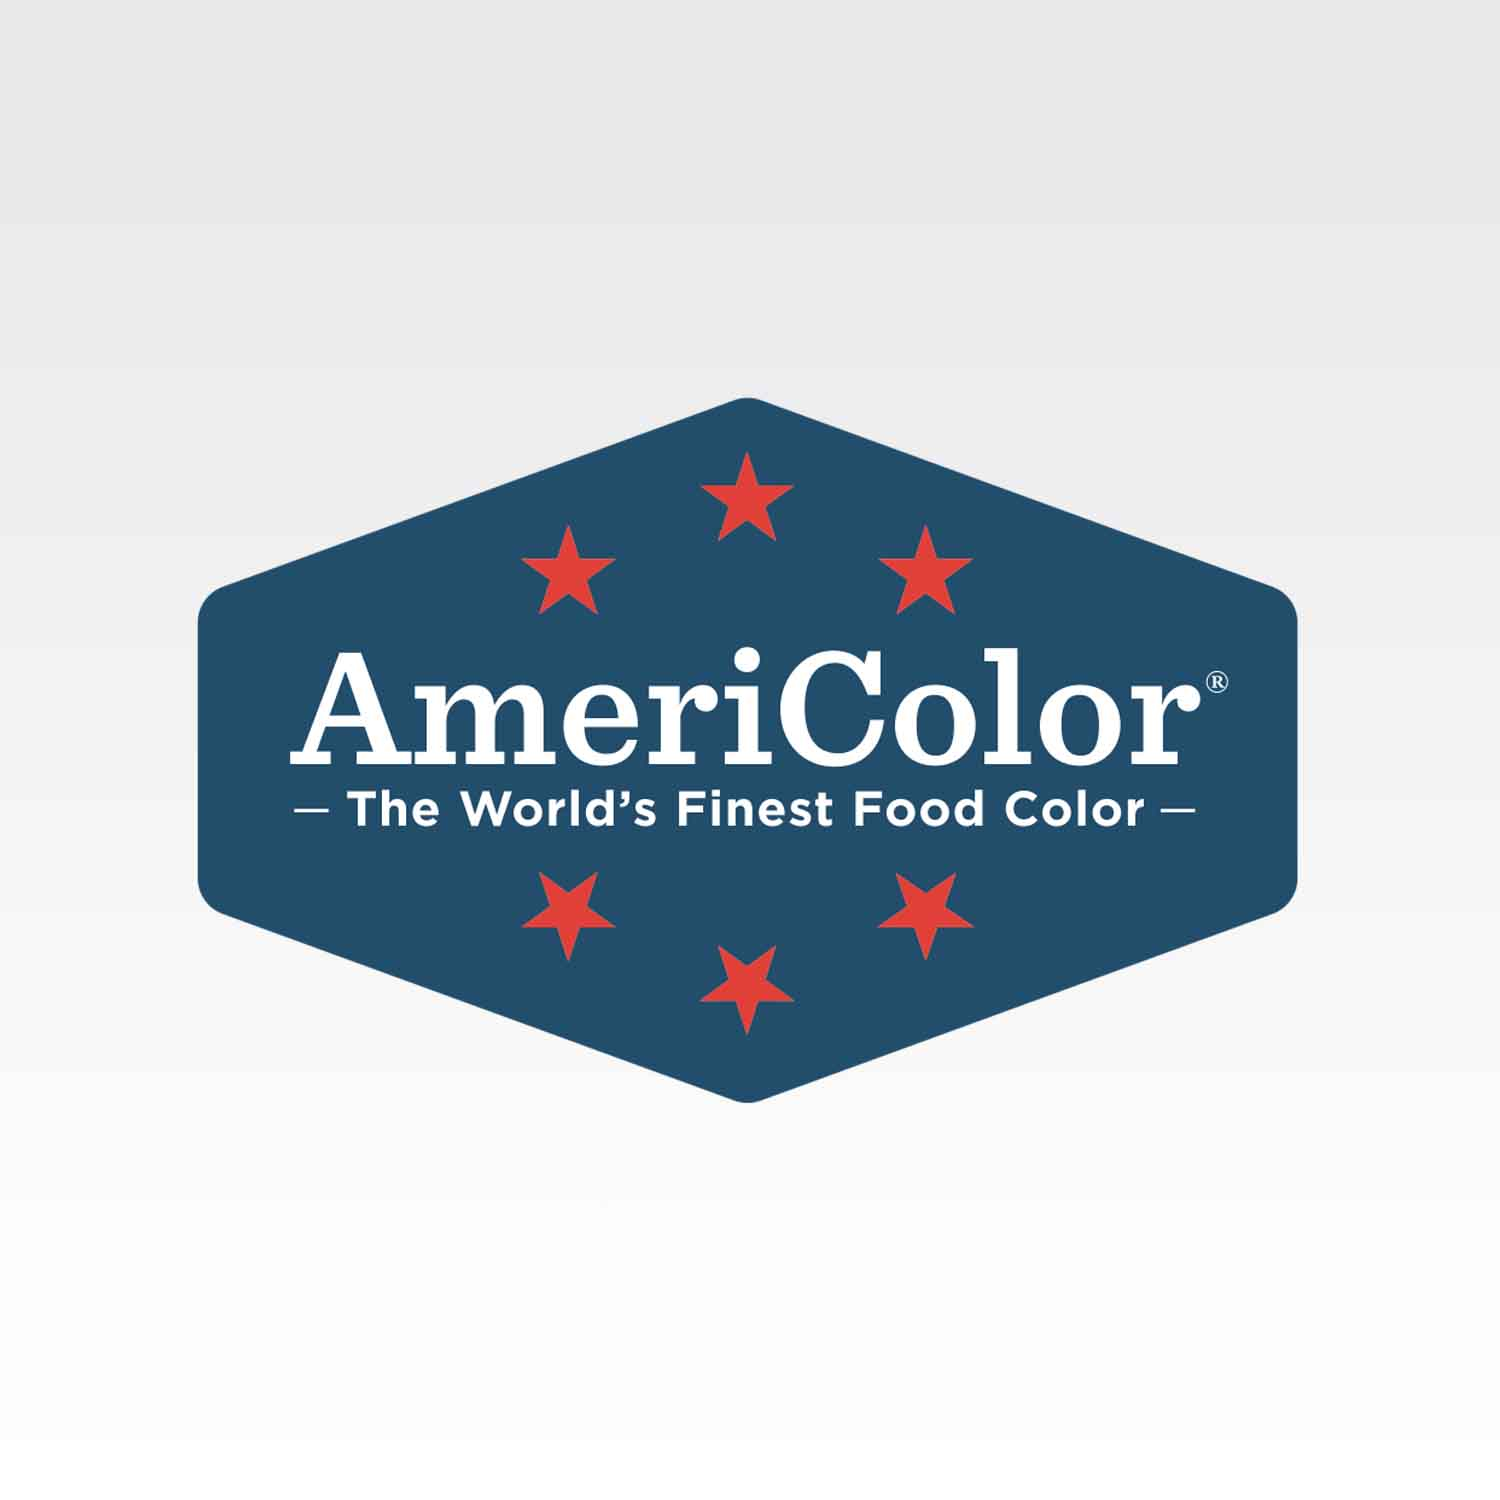 Pearl Sheen Americolor AmeriMist Food Color (Old # 34-672)